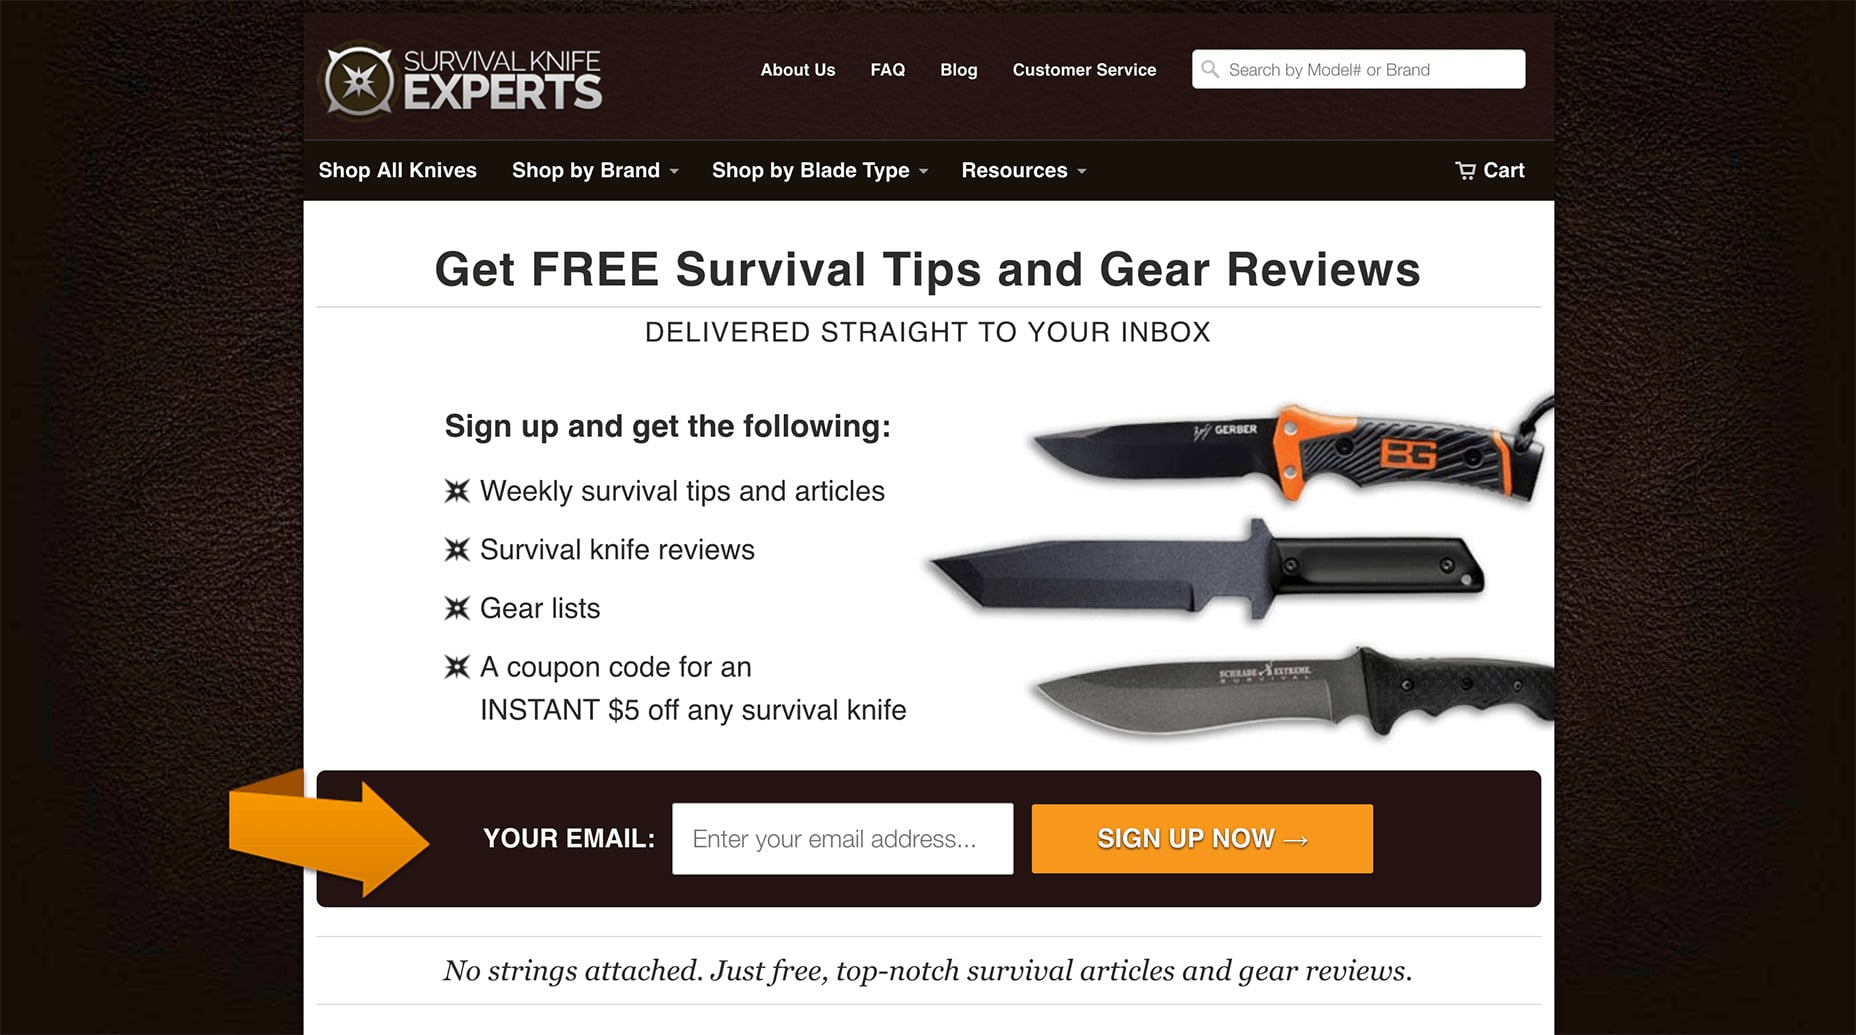 Survival Knife Experts Opt-in Form